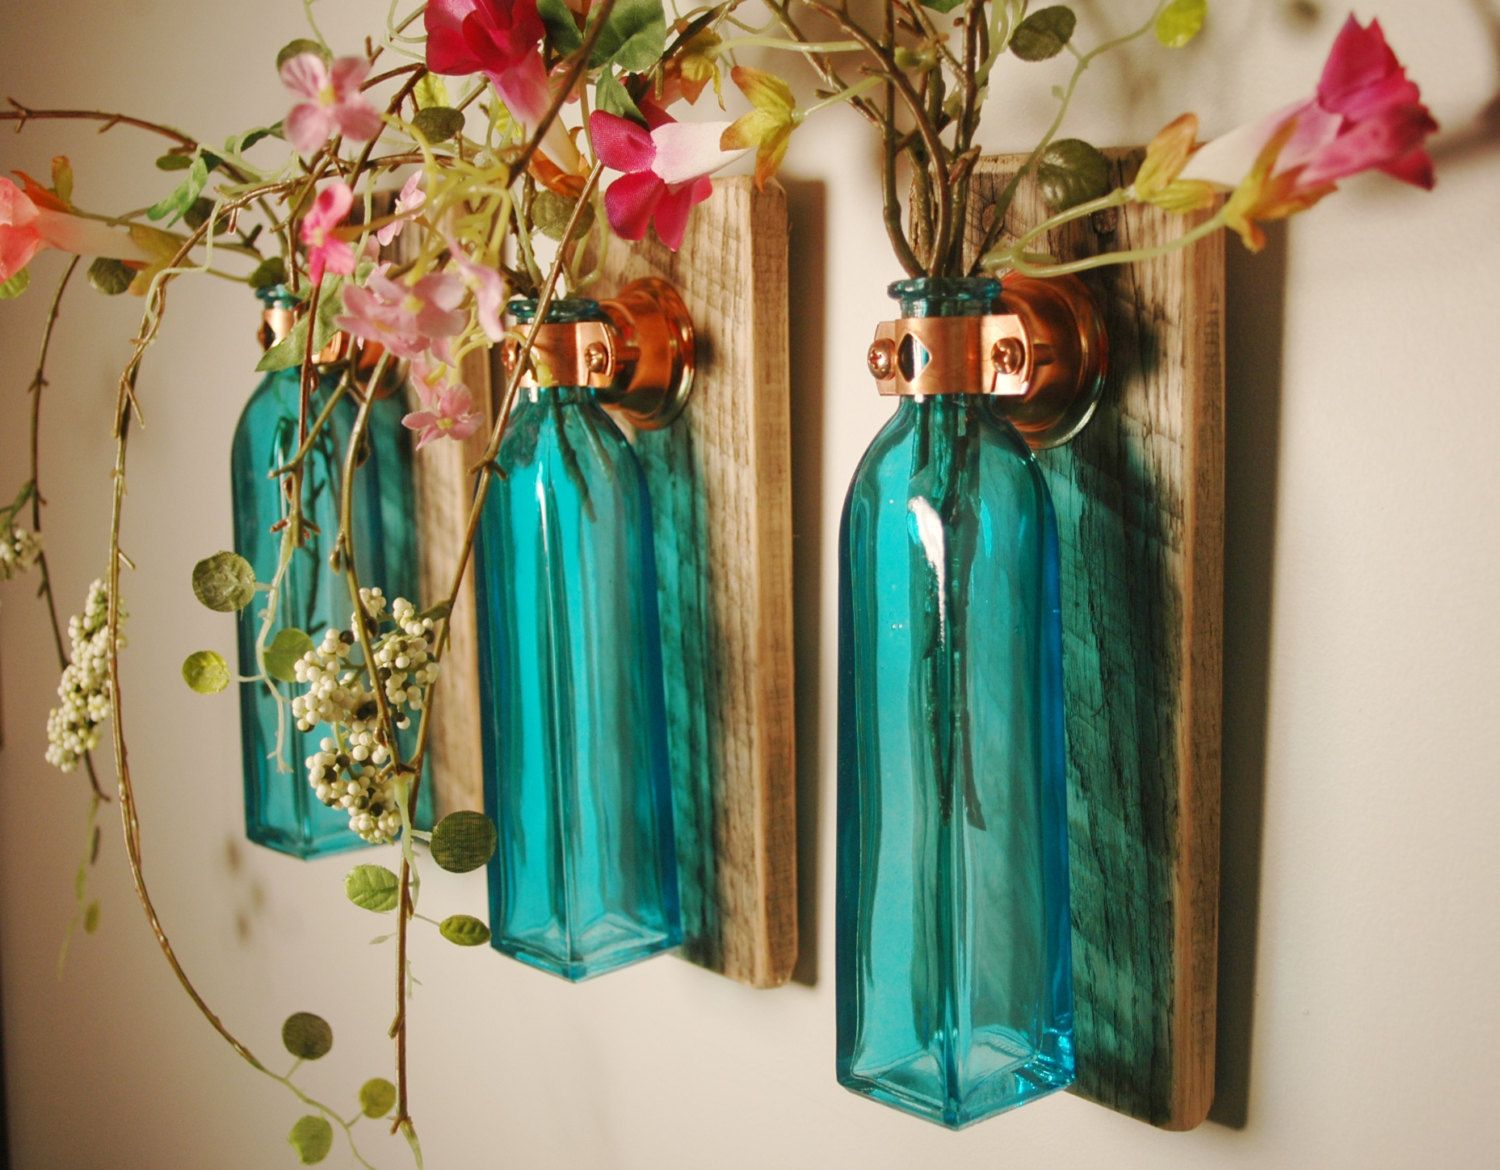 Rustic wall decor for bathroom - Colored Square Glass Bottle Trio Each Mounted On Wood Base For Unique Rustic Wall Decor Bedroom